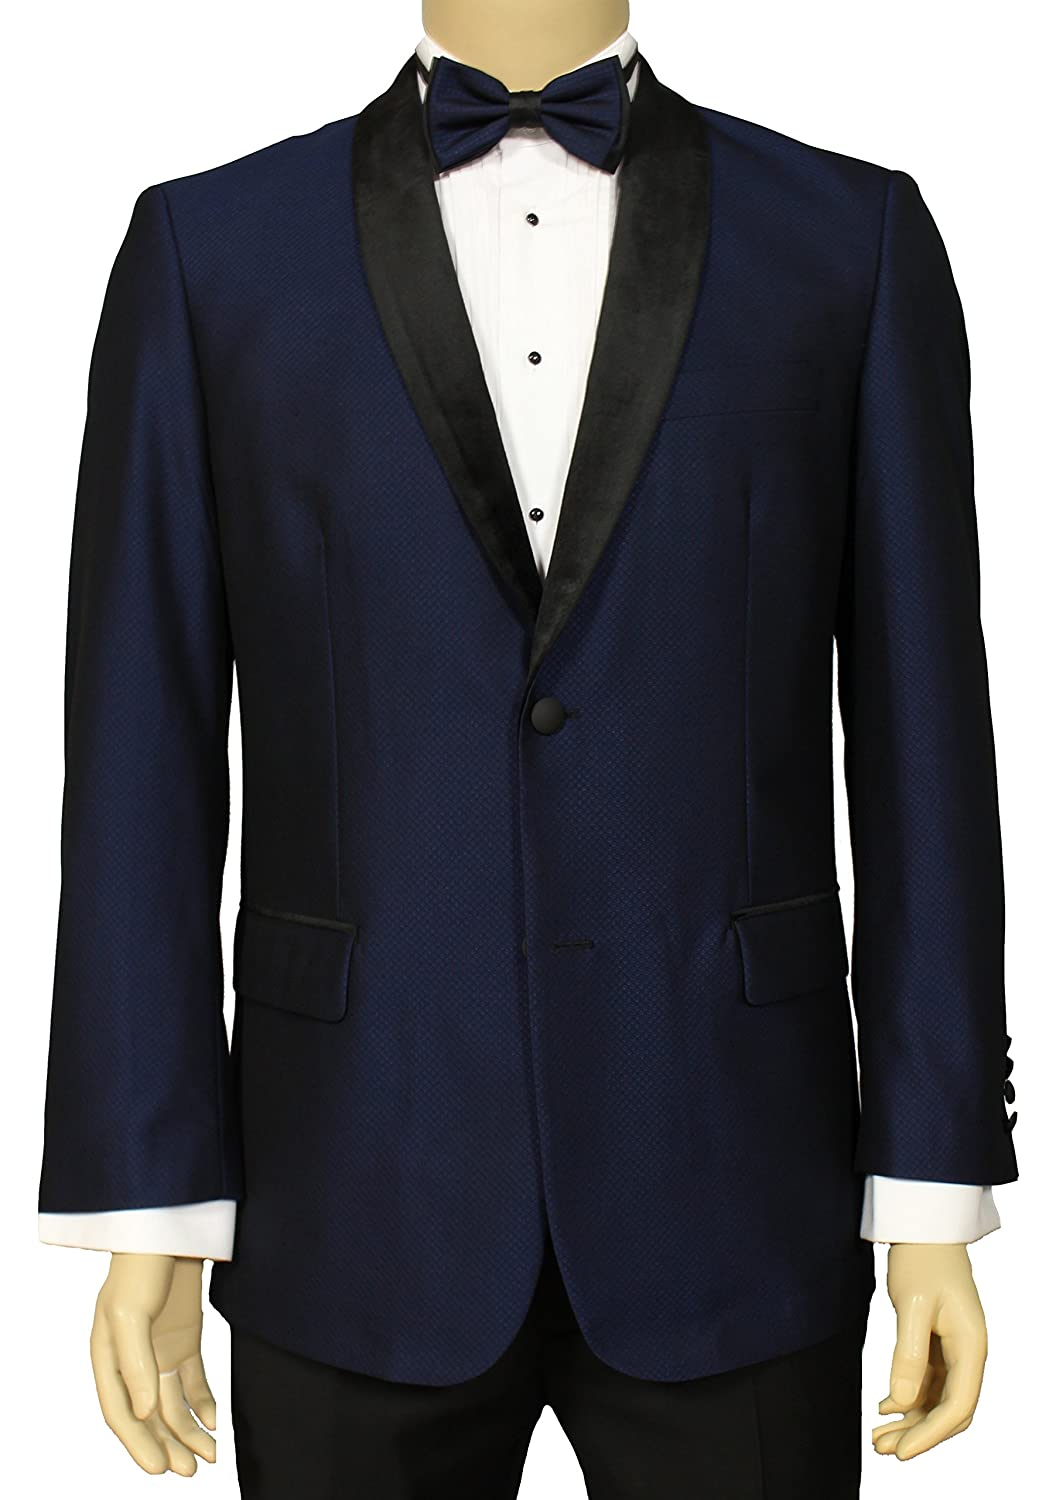 96c815f2a0b Adam Baker Men's Classic Fit Velvet Shawl Collar Two Button Blazer Formal  Tuxedo Dinner Jacket - Colors